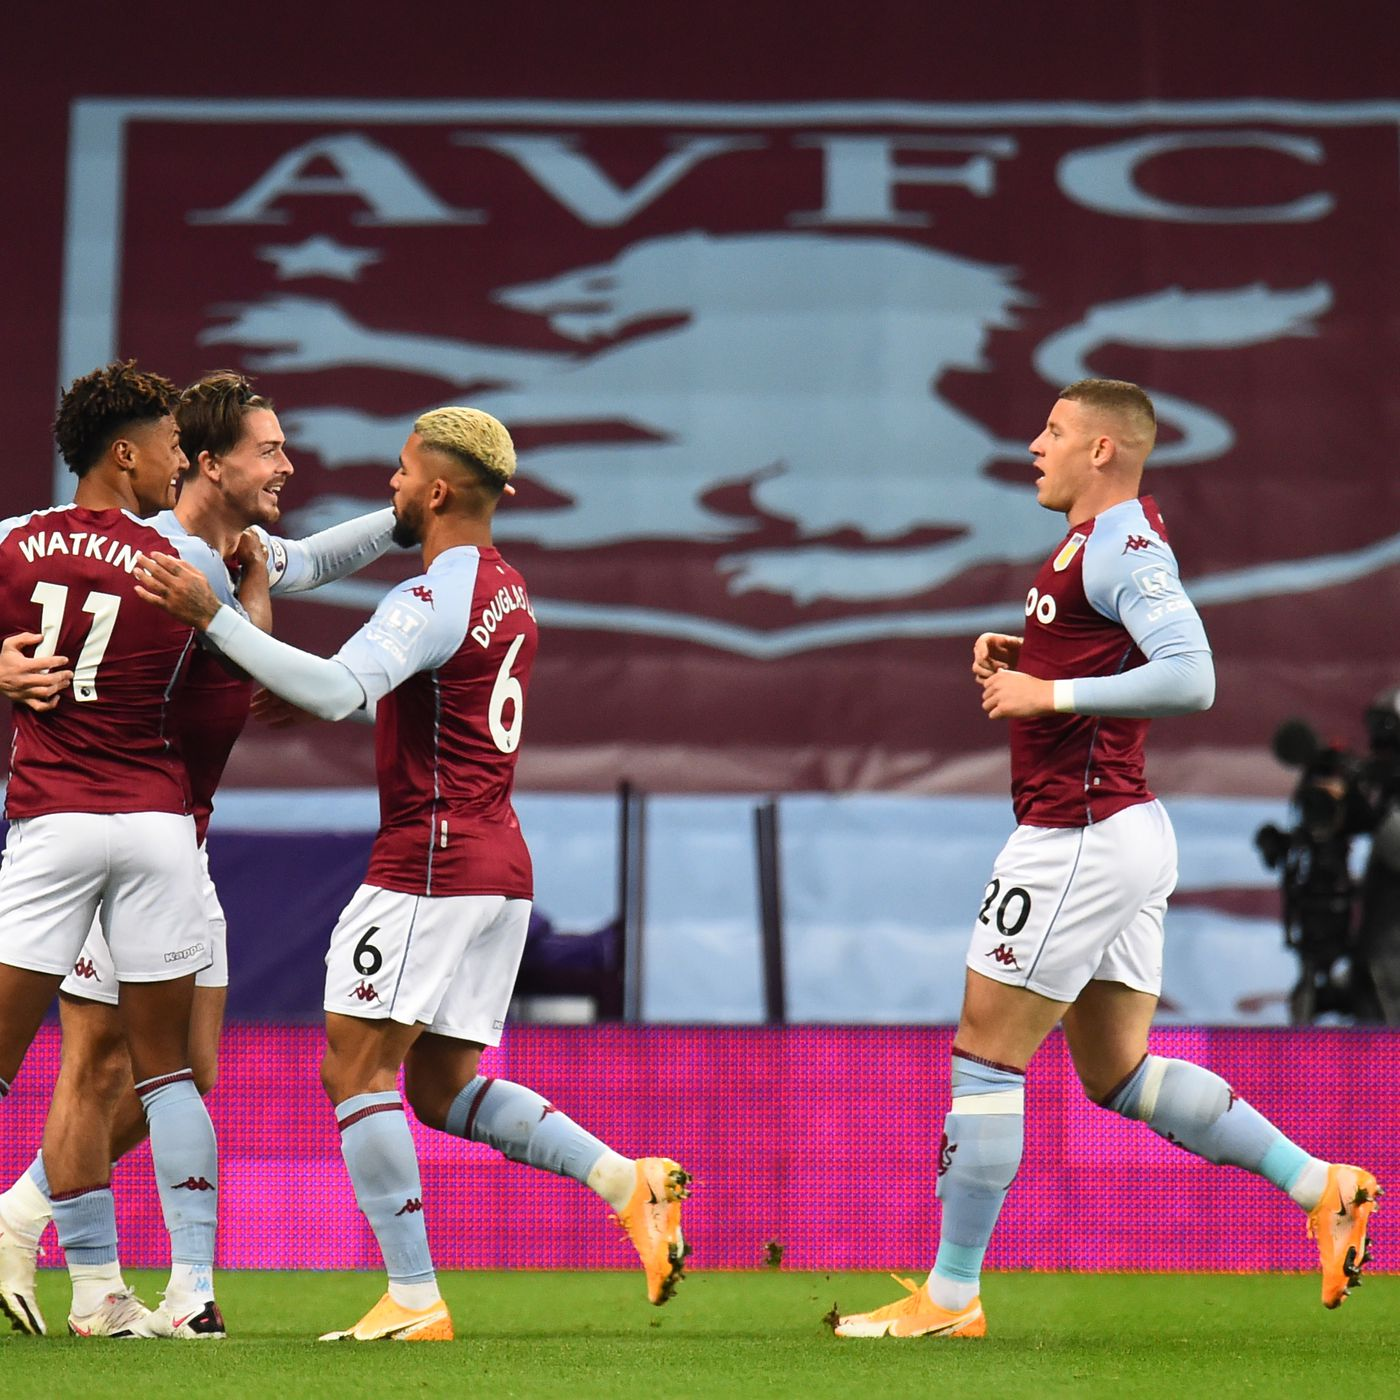 Xv 7 2 Win Over Liverpool Could Be The Dawn Of Villa S Bright Future 7500 To Holte